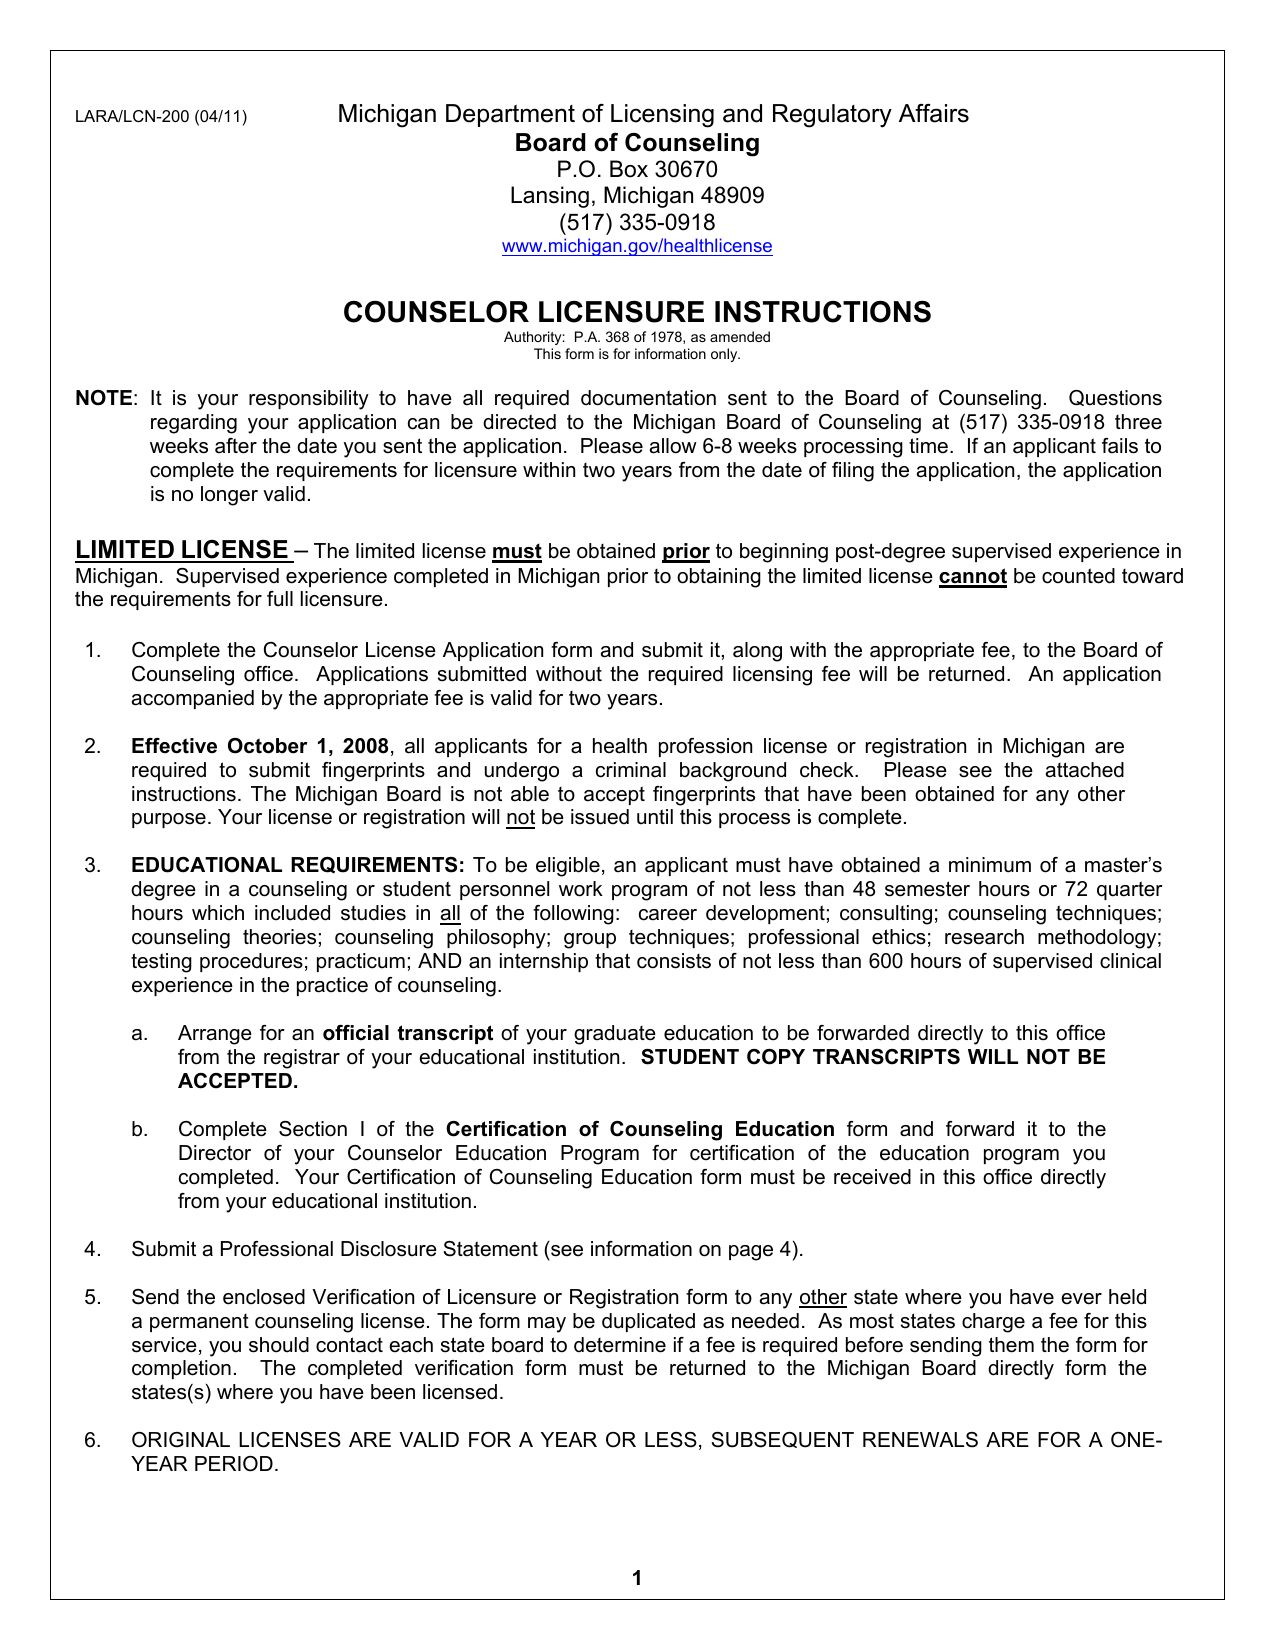 COUNSELOR LICENSURE INSTRUCTIONS Michigan Department of